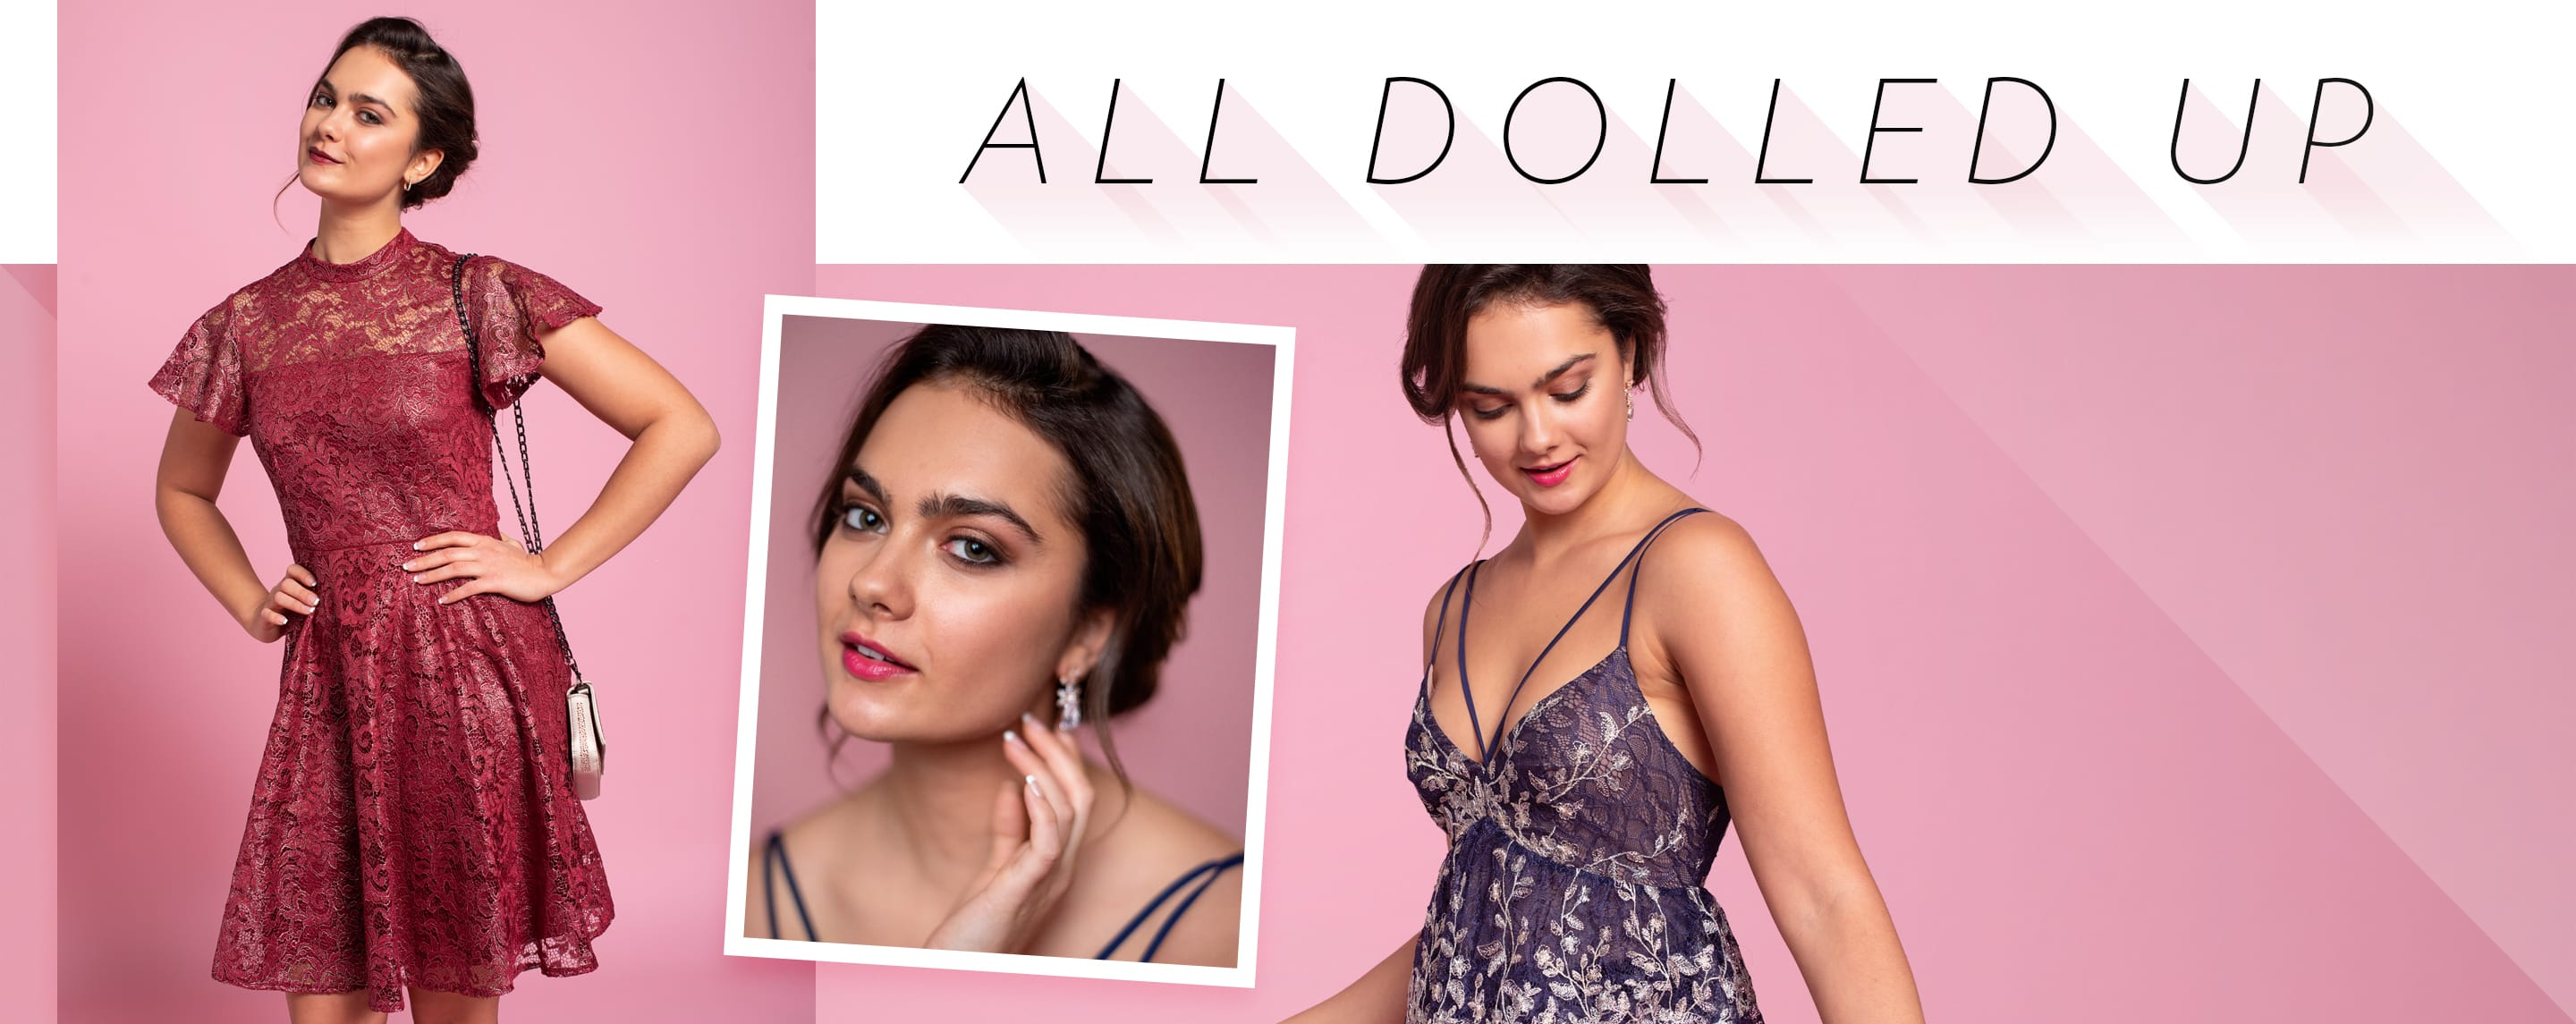 All Dolled Up Trend